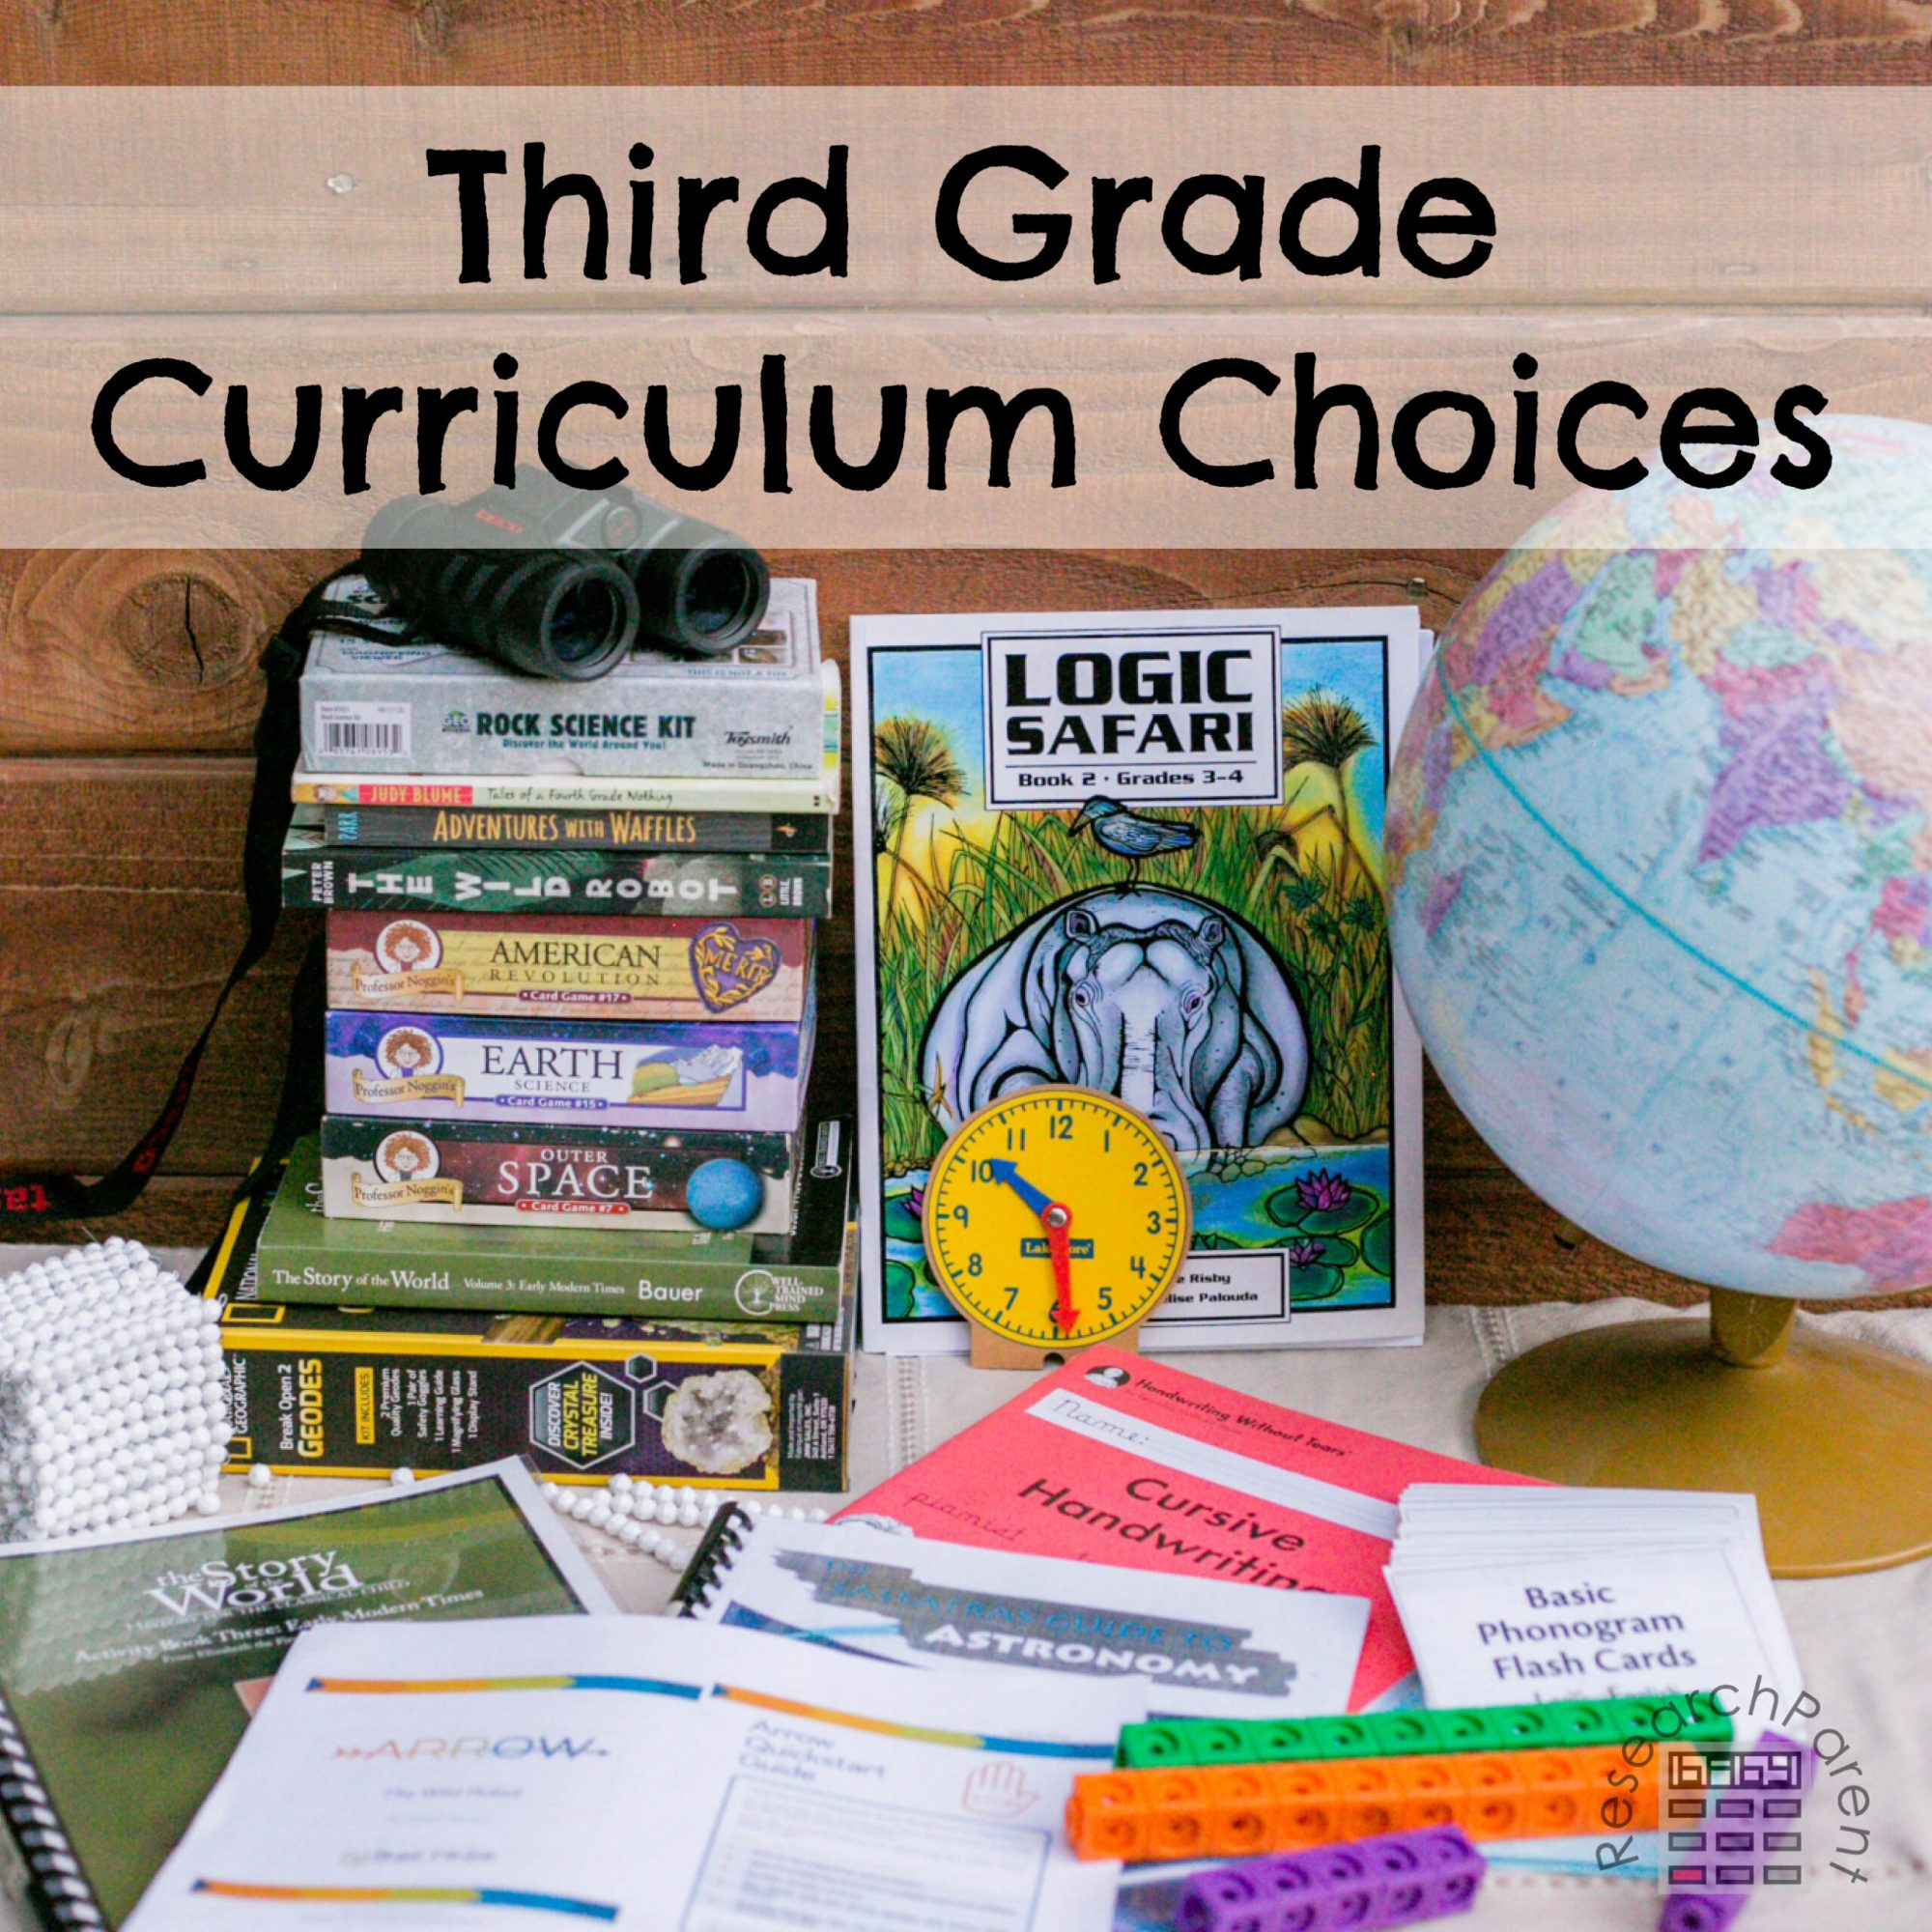 hight resolution of Third Grade Curriculum Choices - ResearchParent.com